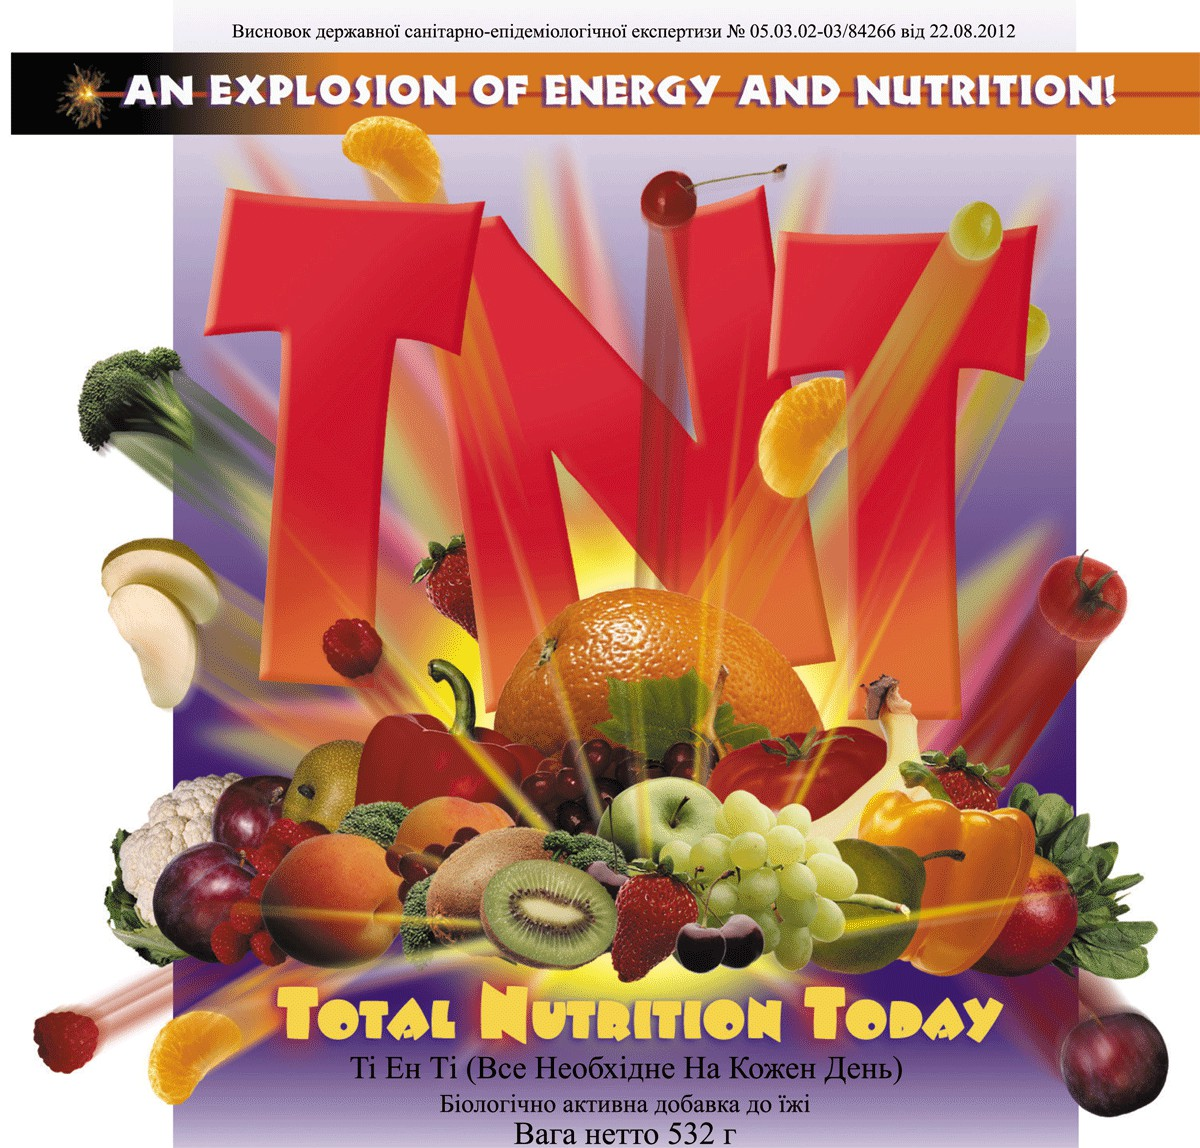 TNT (Total Nutrition Today) [4300] (-20%)